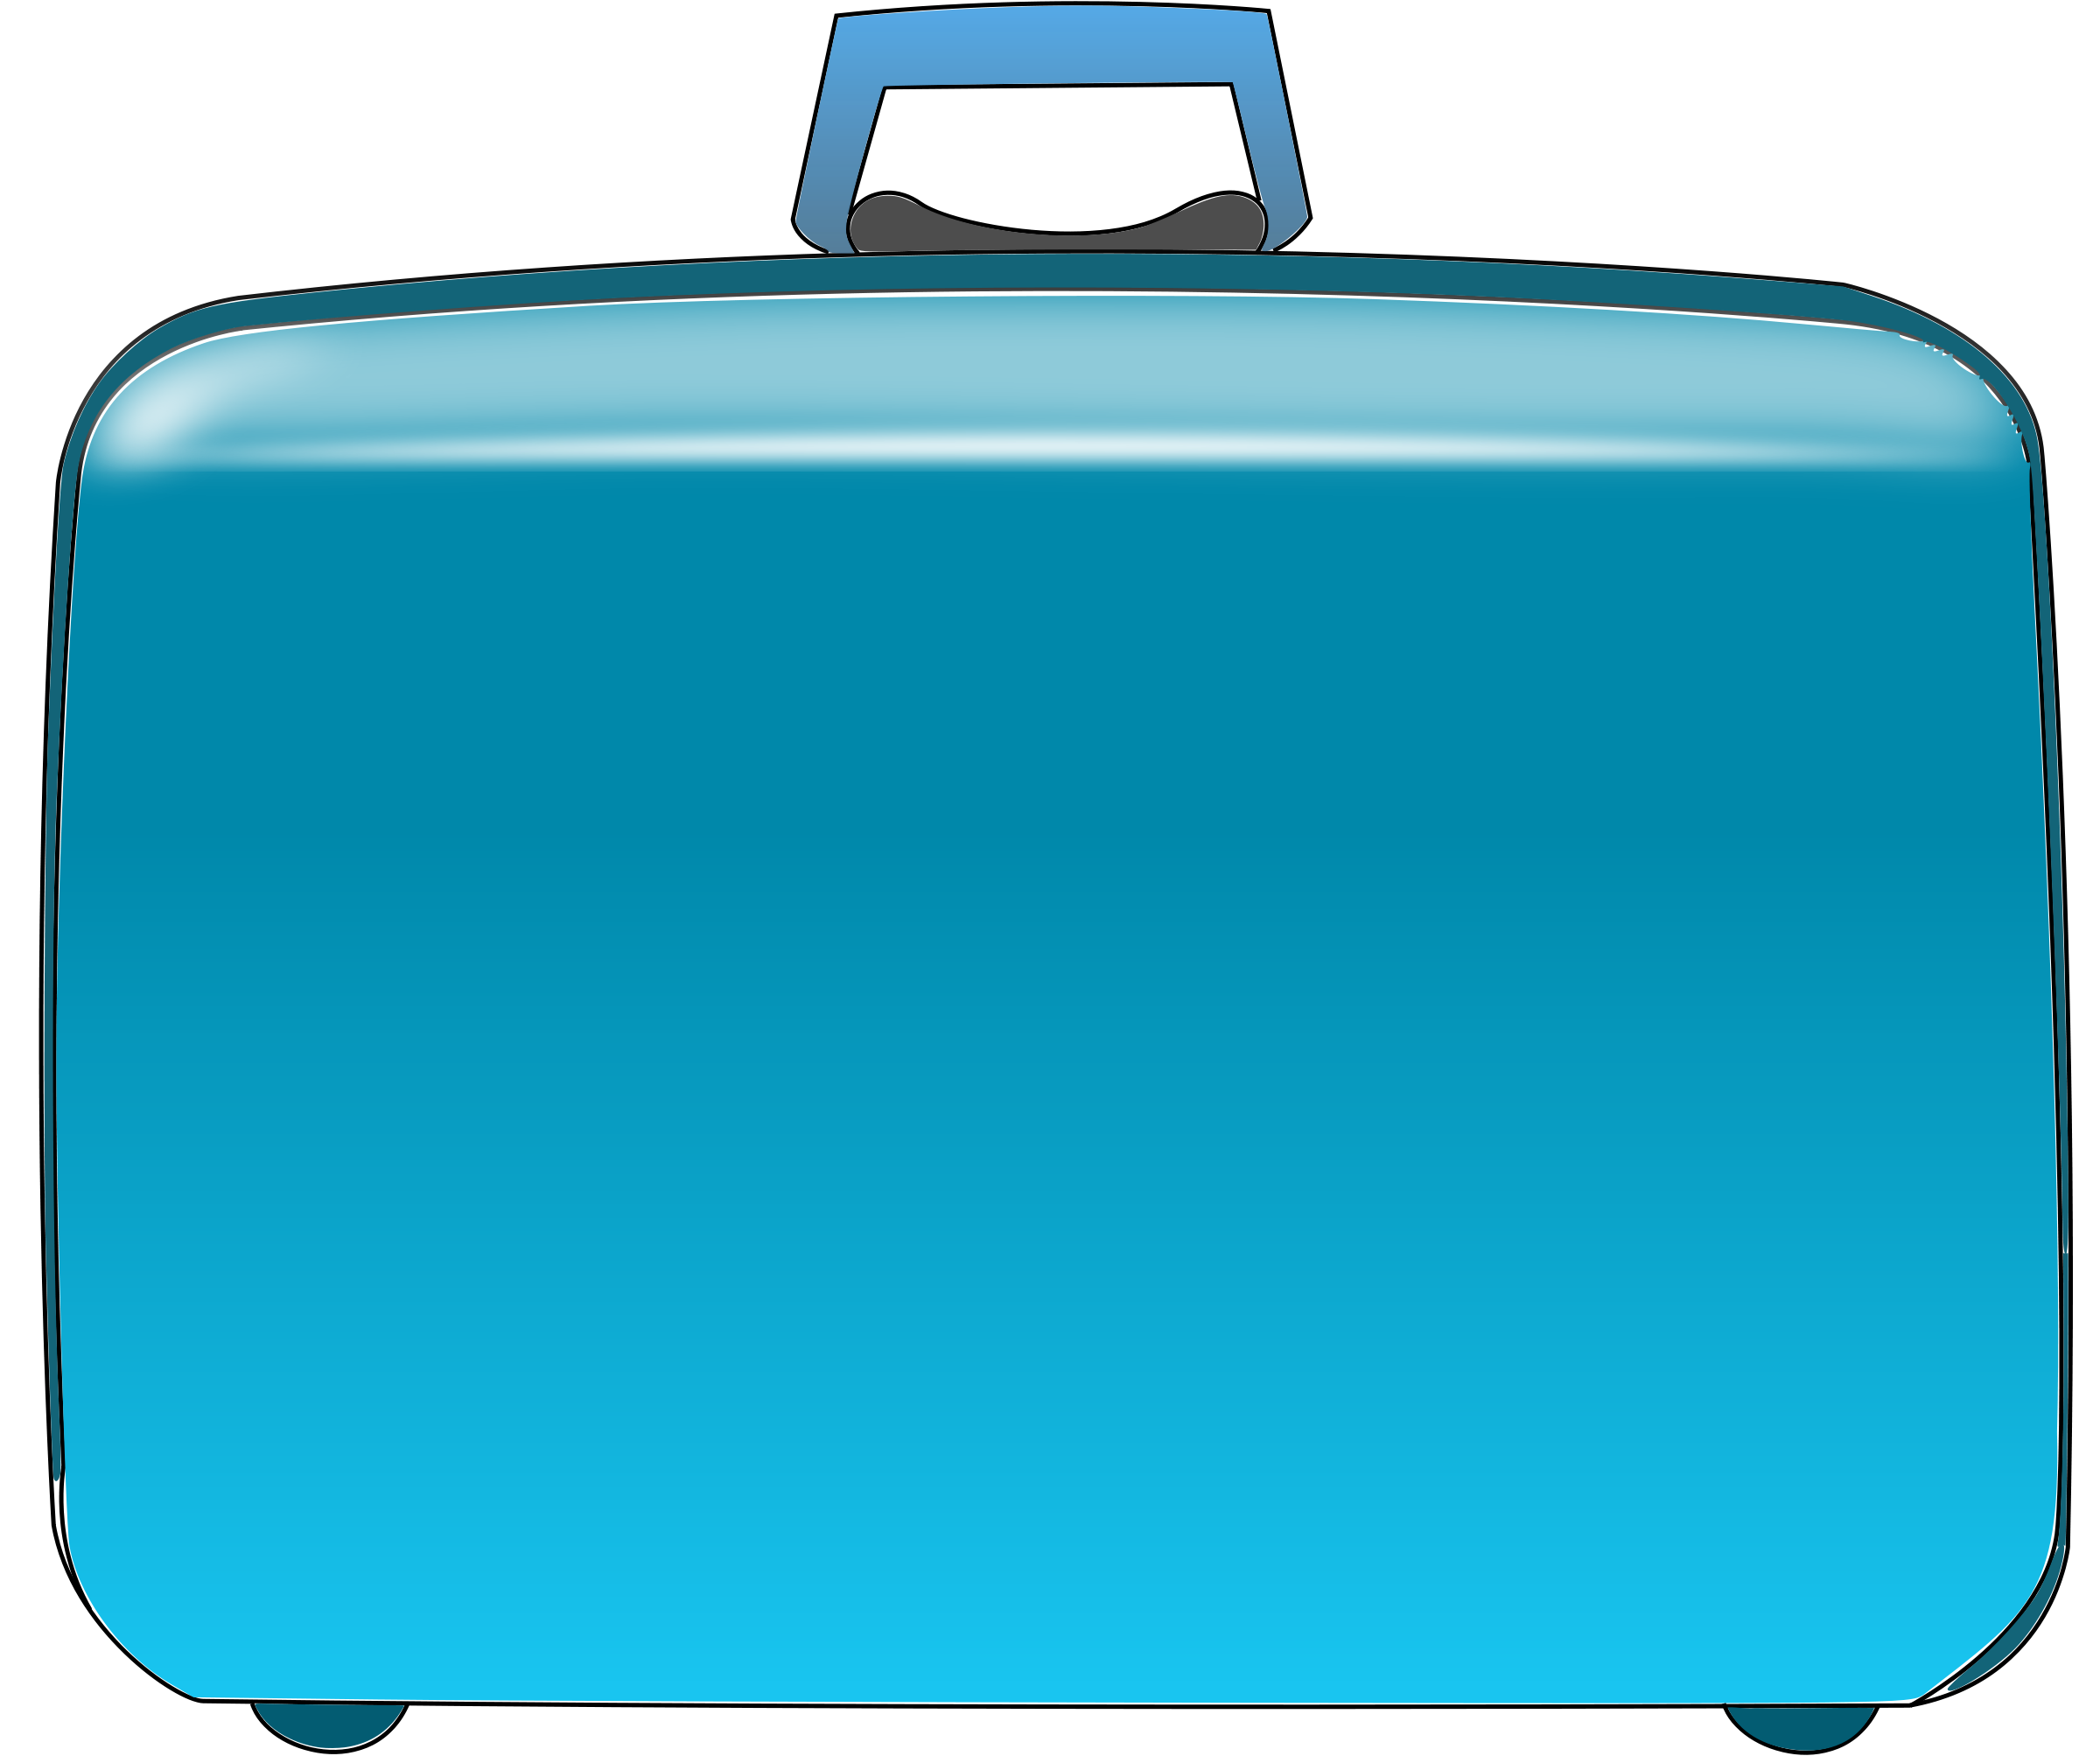 Luggage Clipart Free Travel S - Luggage Clip Art